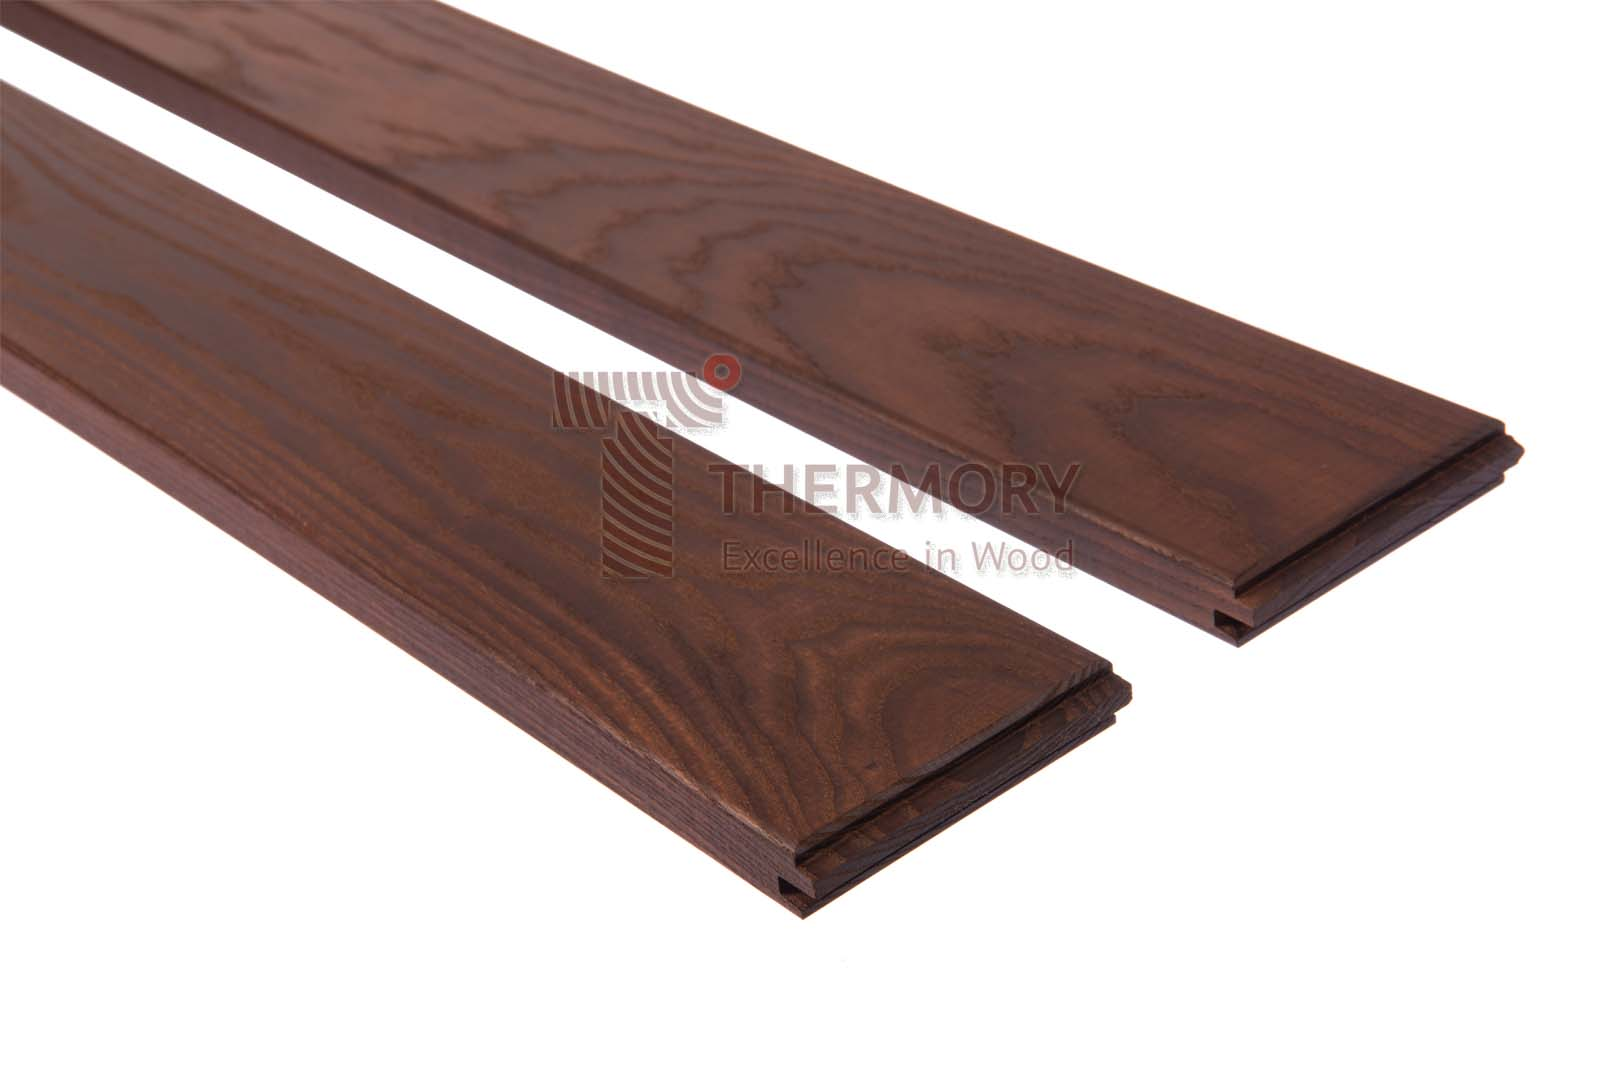 D4 20x95mm - The D4 profile is a s classic decking board which does not require any additional fitting systems.